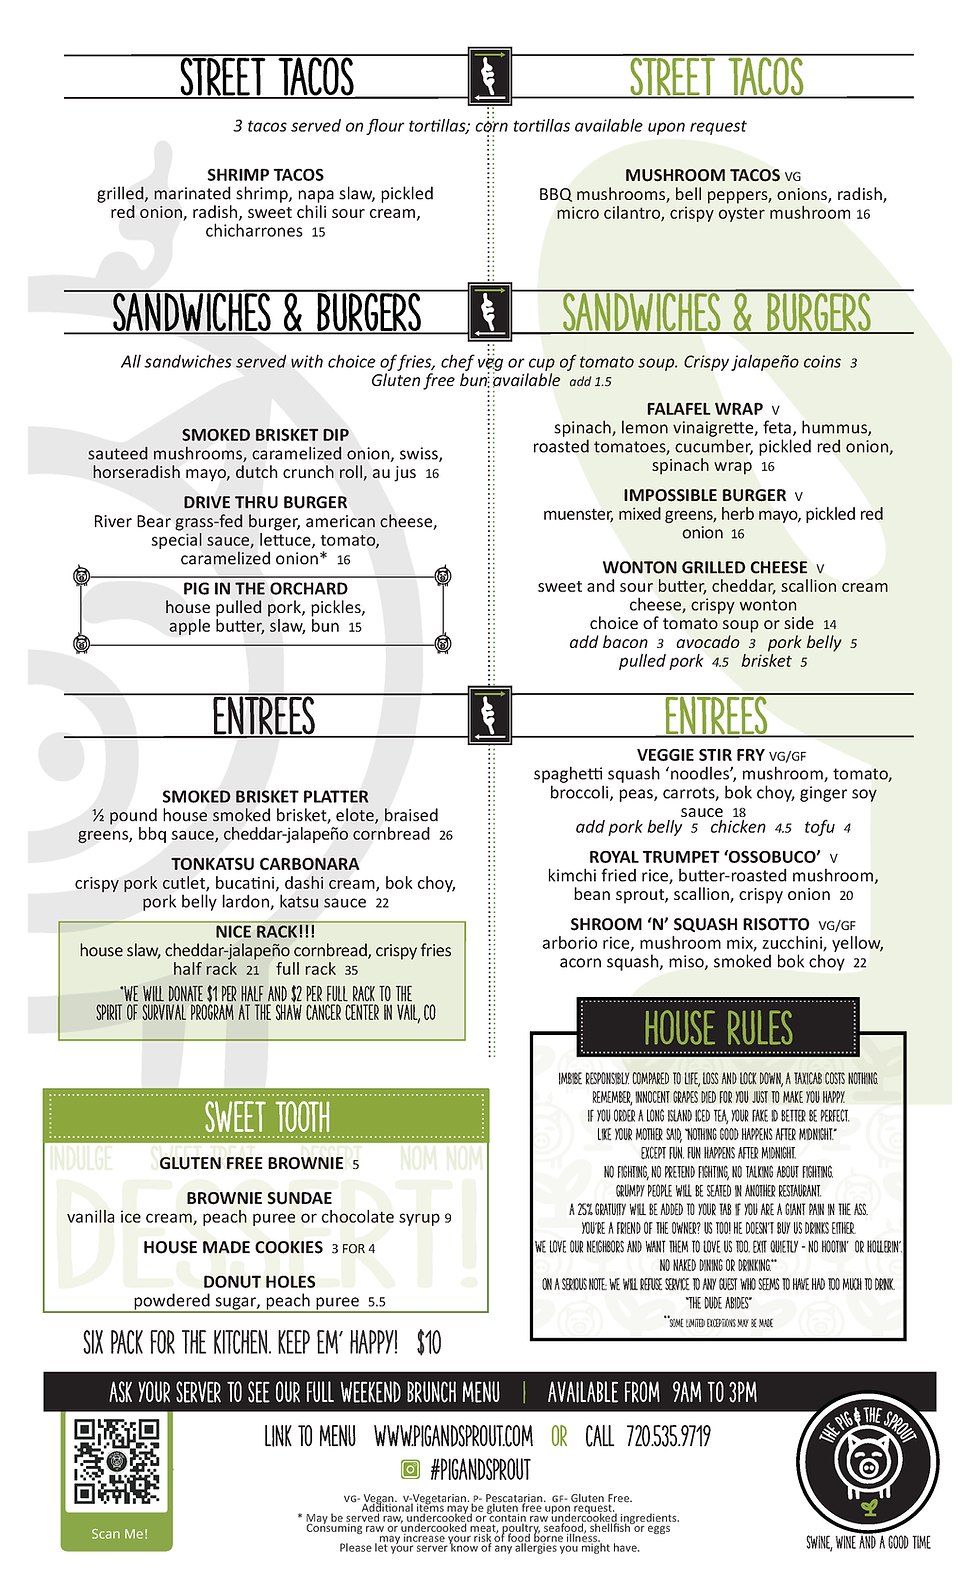 All Day Menu 10.18 (1)_Page_2.png